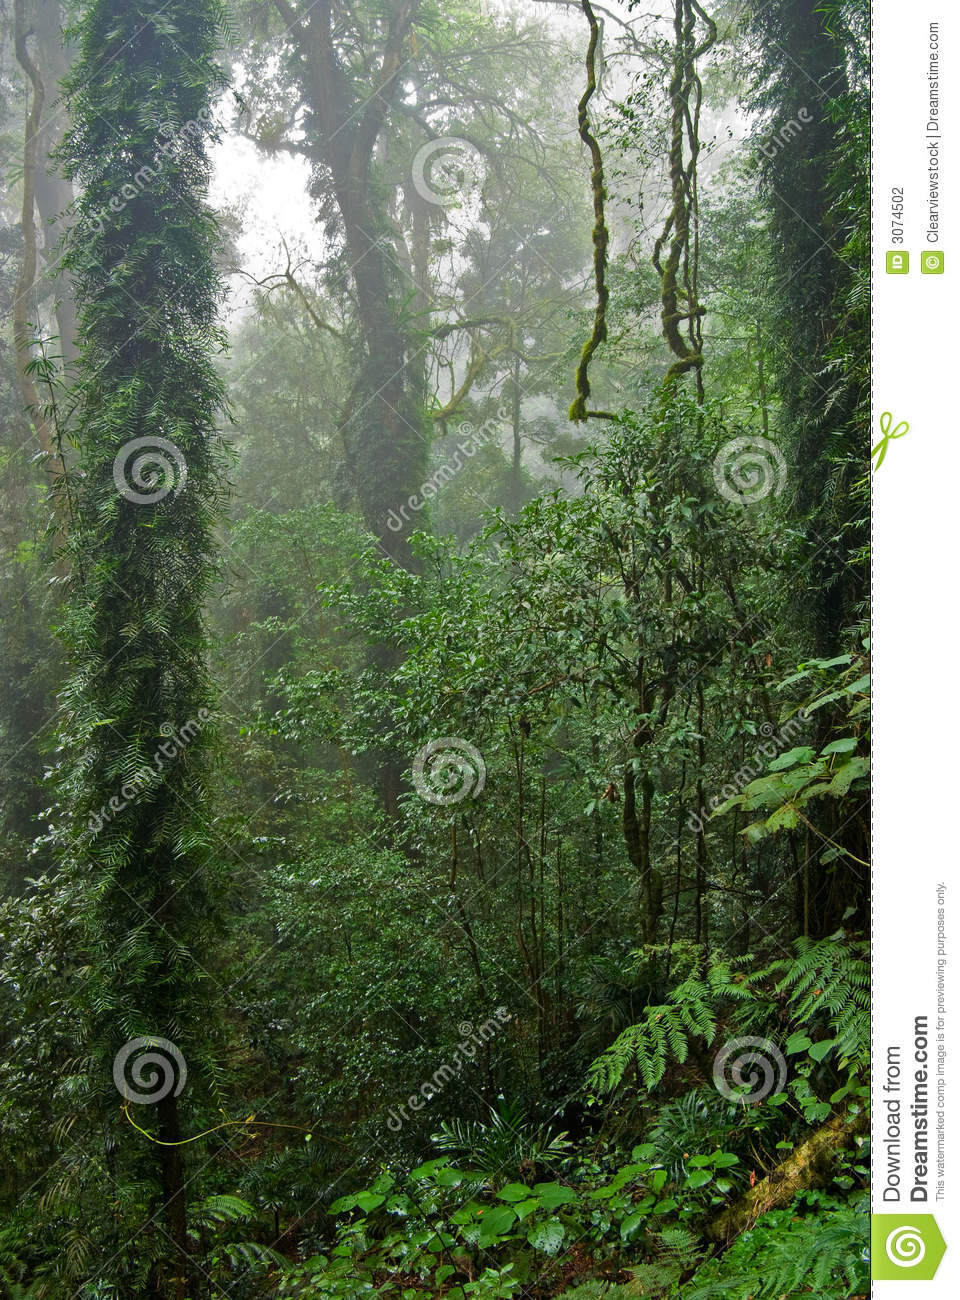 Rain forest trees and plants